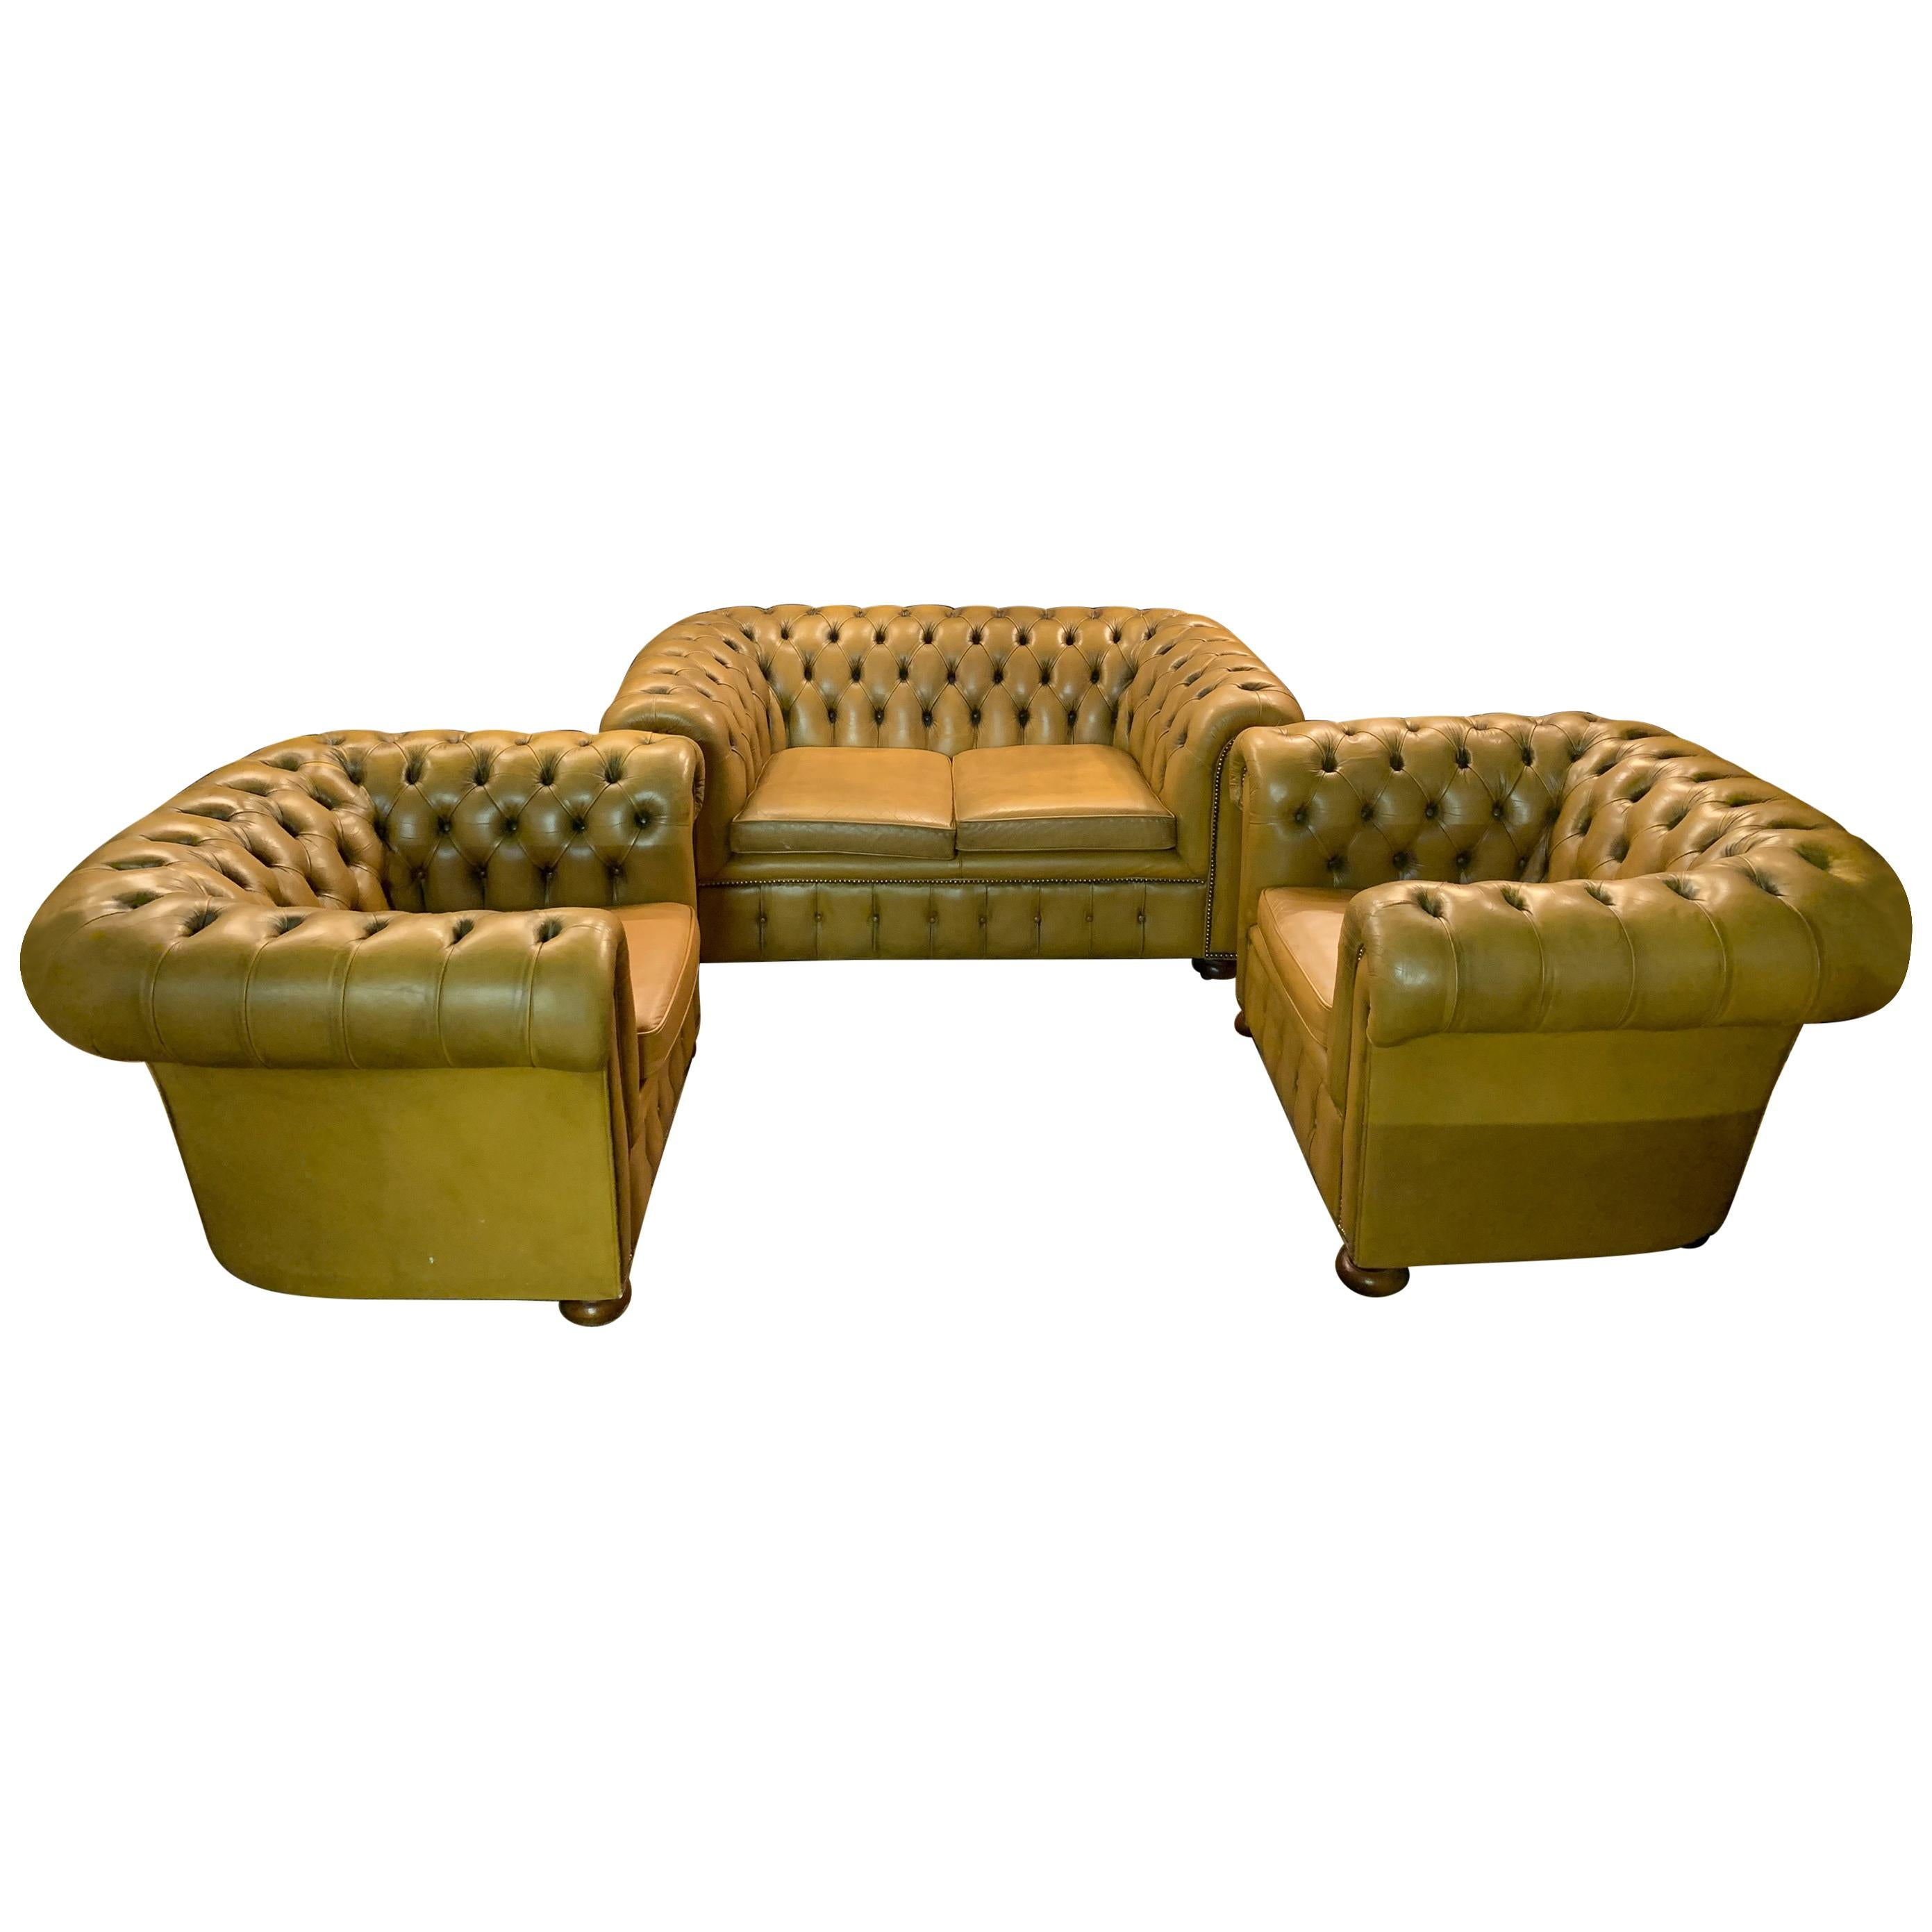 Mustard Yellow Leather Chesterfield Club Suite Armchair and Sofa